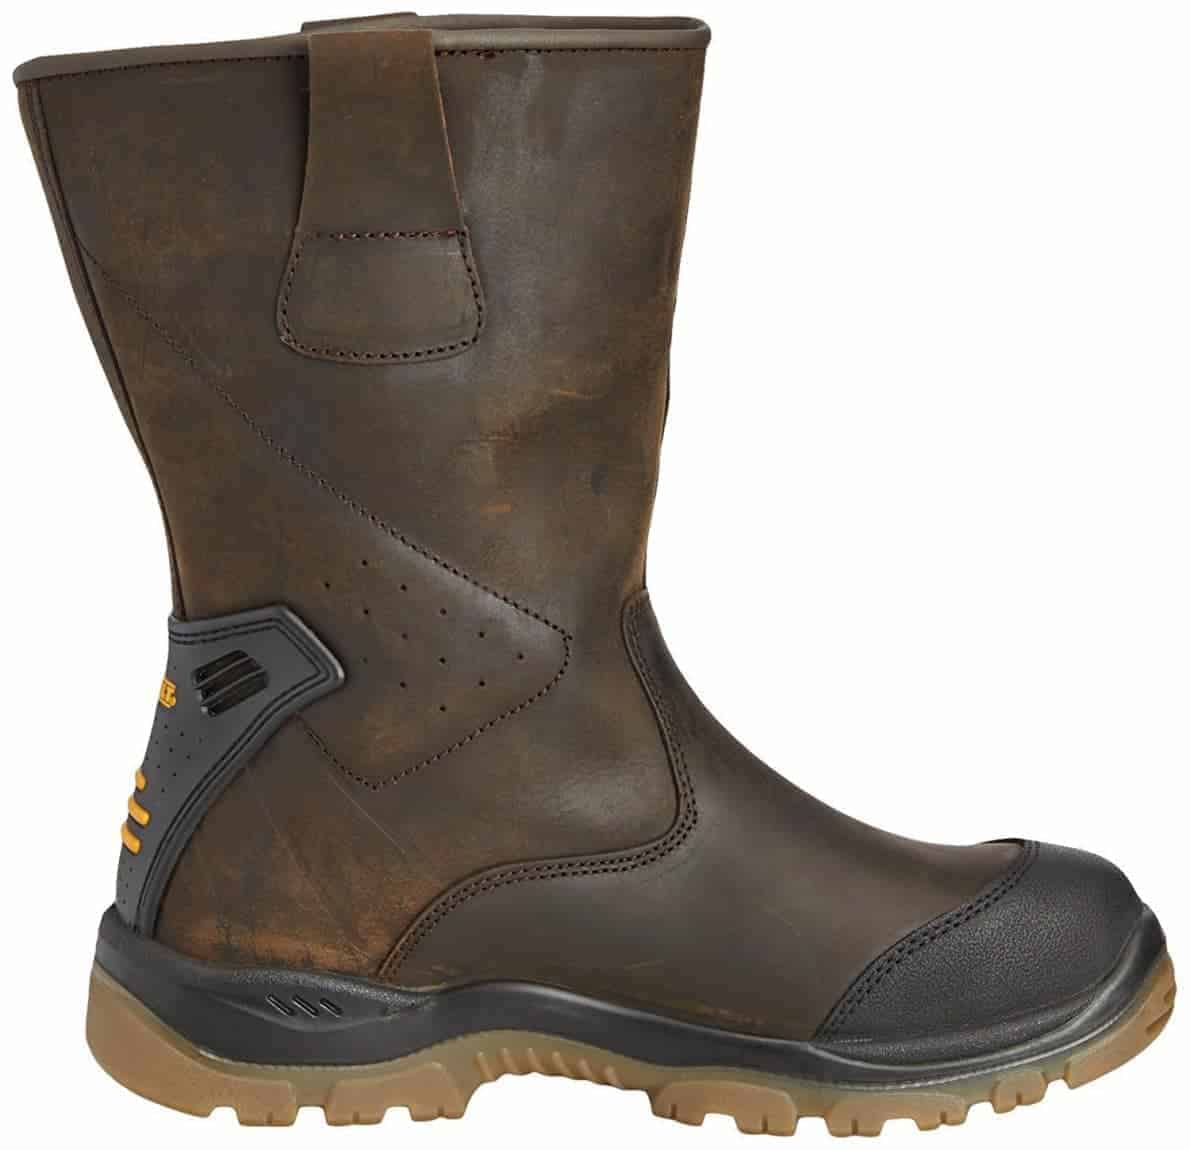 Best Rigger Boots With Ankle Support